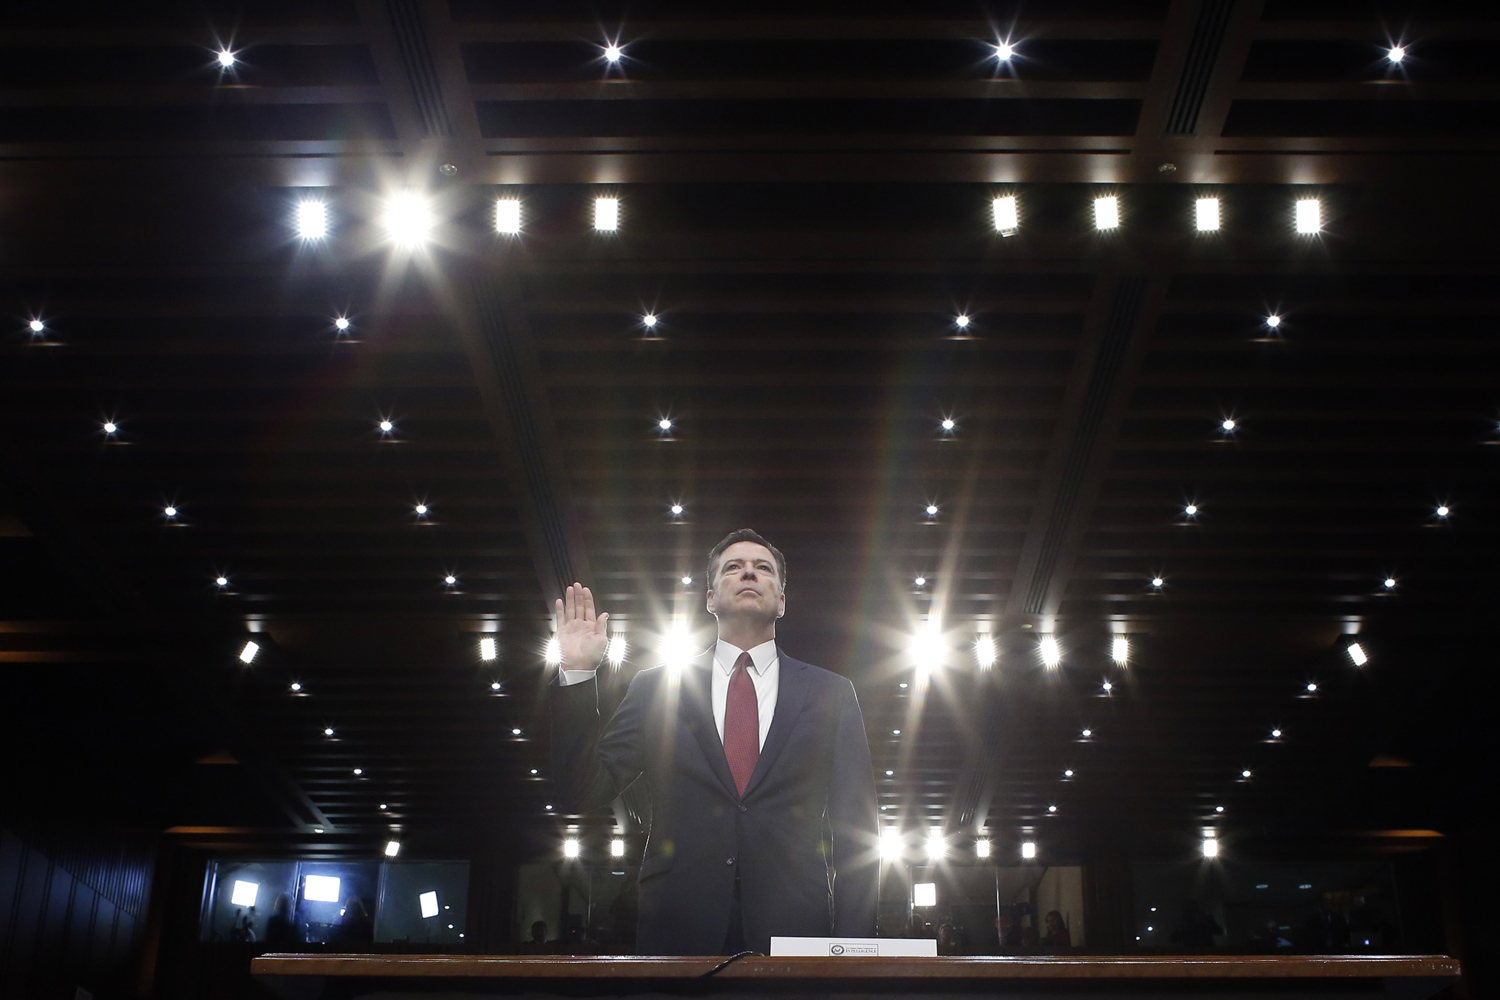 Former FBI director James Comey is sworn in during a Senate Intelligence Committee hearing on Capitol Hill, Thursday, June 8, 2017, in Washington. (Alex Brandon/AP)